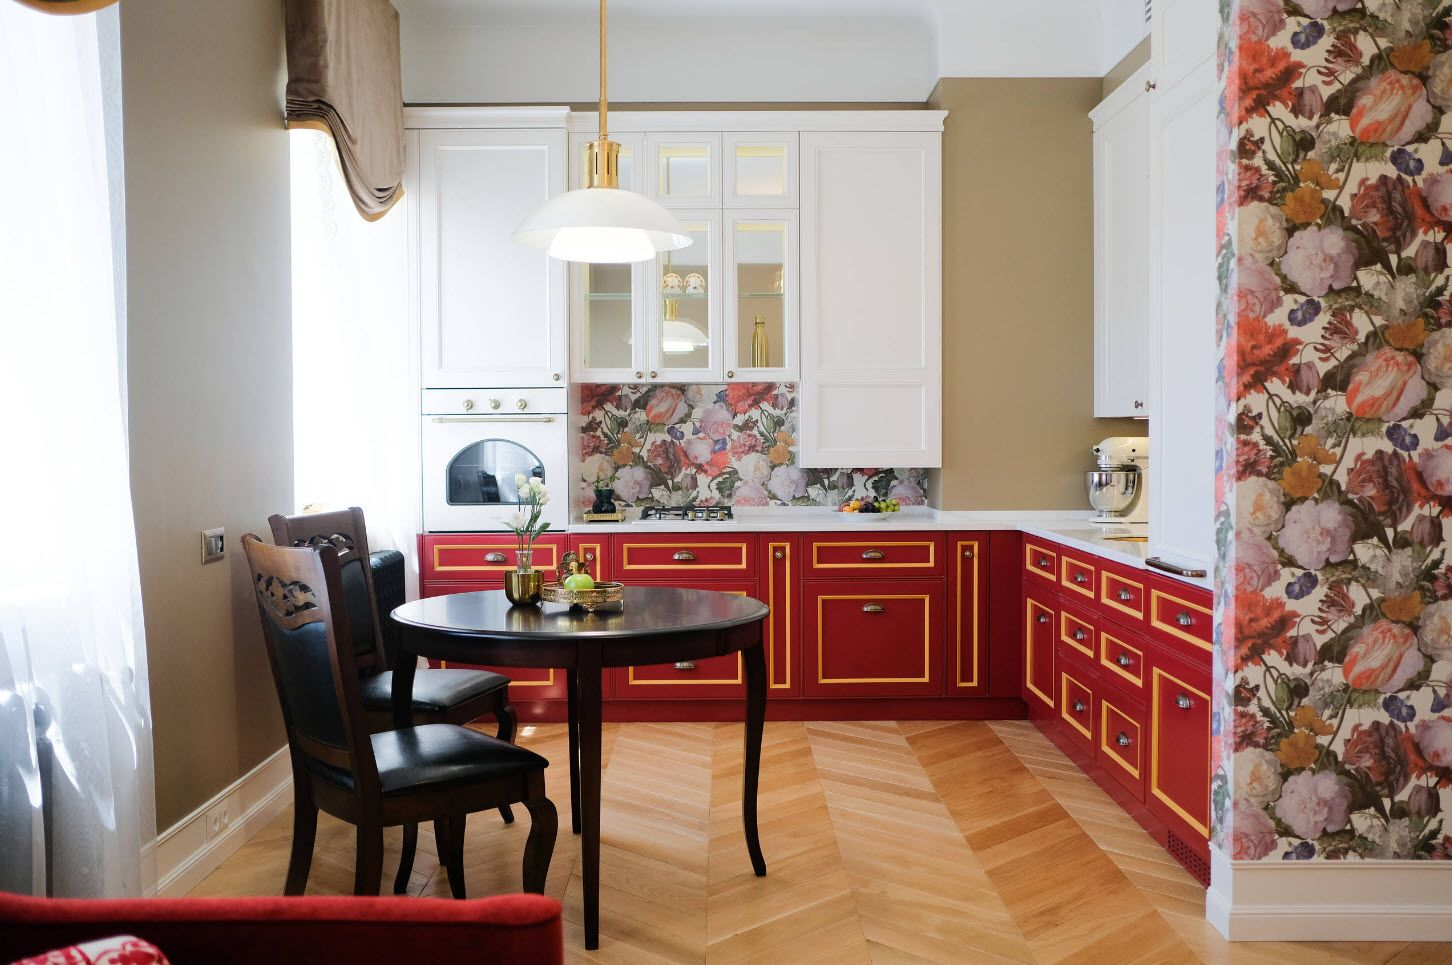 75 Square Feet Kitchen Interior Decoration Advice and Design Ideas. Neat pastel colored Classic kitchen with laminated floor and red bottom tier of furniture set